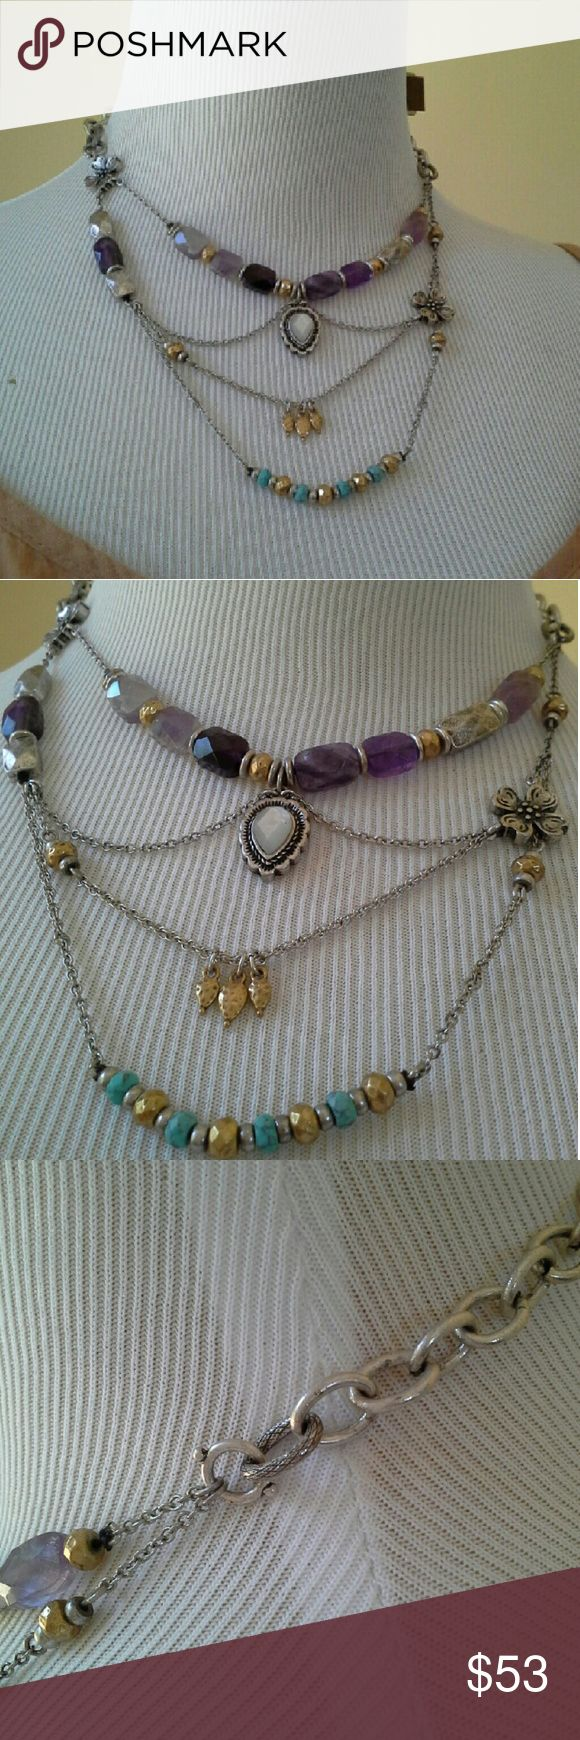 """LUCKY BRAND Necklace >>> ONLY 1 LEFT! <<< Lucky lucky lucky! The goes-with-everything necklace. Asymmetrical chain pattern. Silver, gold, with dark and light faceted purple amethyst stones, and small faceted turquoise colored stones. APPROX MEAS: 16.5"""" chain. Bottom chain hangs approx 4.5"""" below the center. The dogwood flower beads are 9/16"""" square for reference. Only 2 available. Lucky Brand Jewelry Necklaces"""